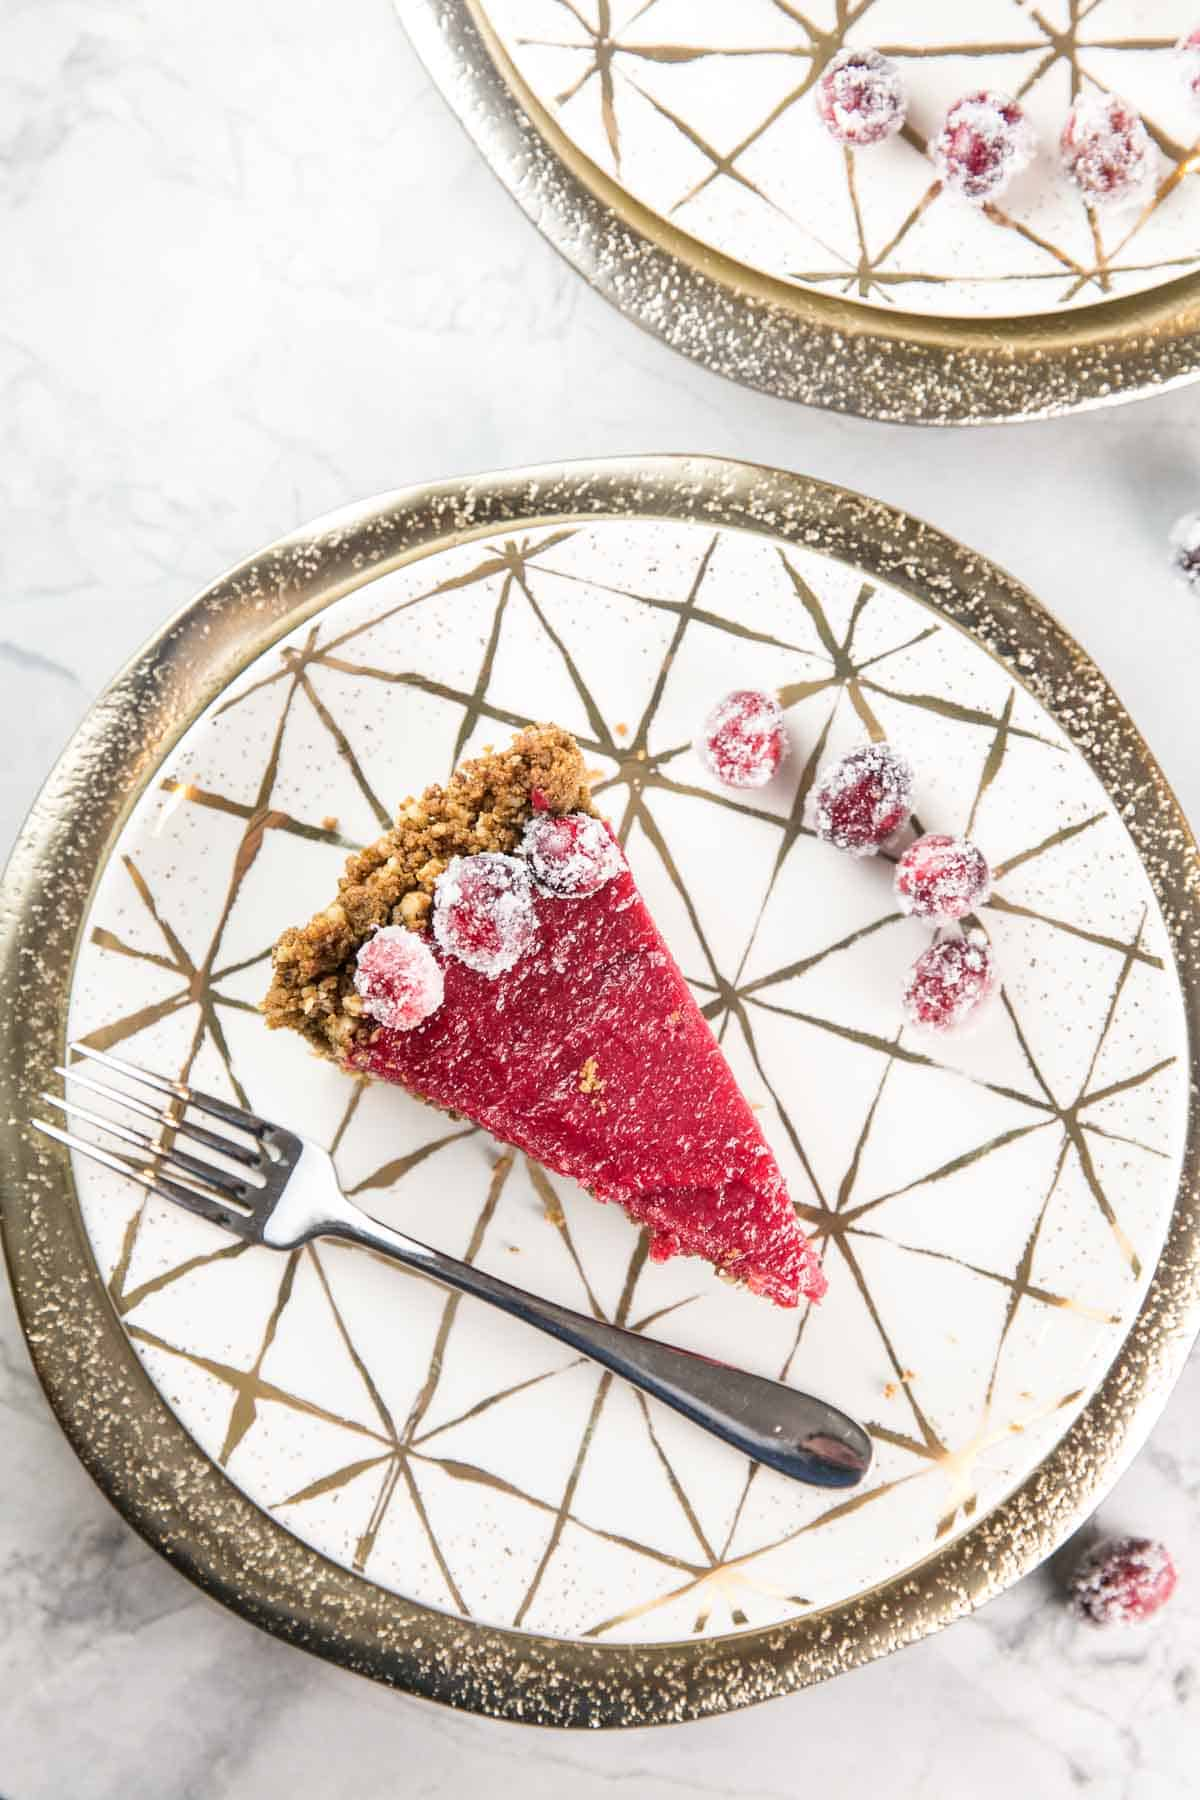 overhead view of one slice of cranberry curd pie on a gold and white plate surrounded by sugared cranberries